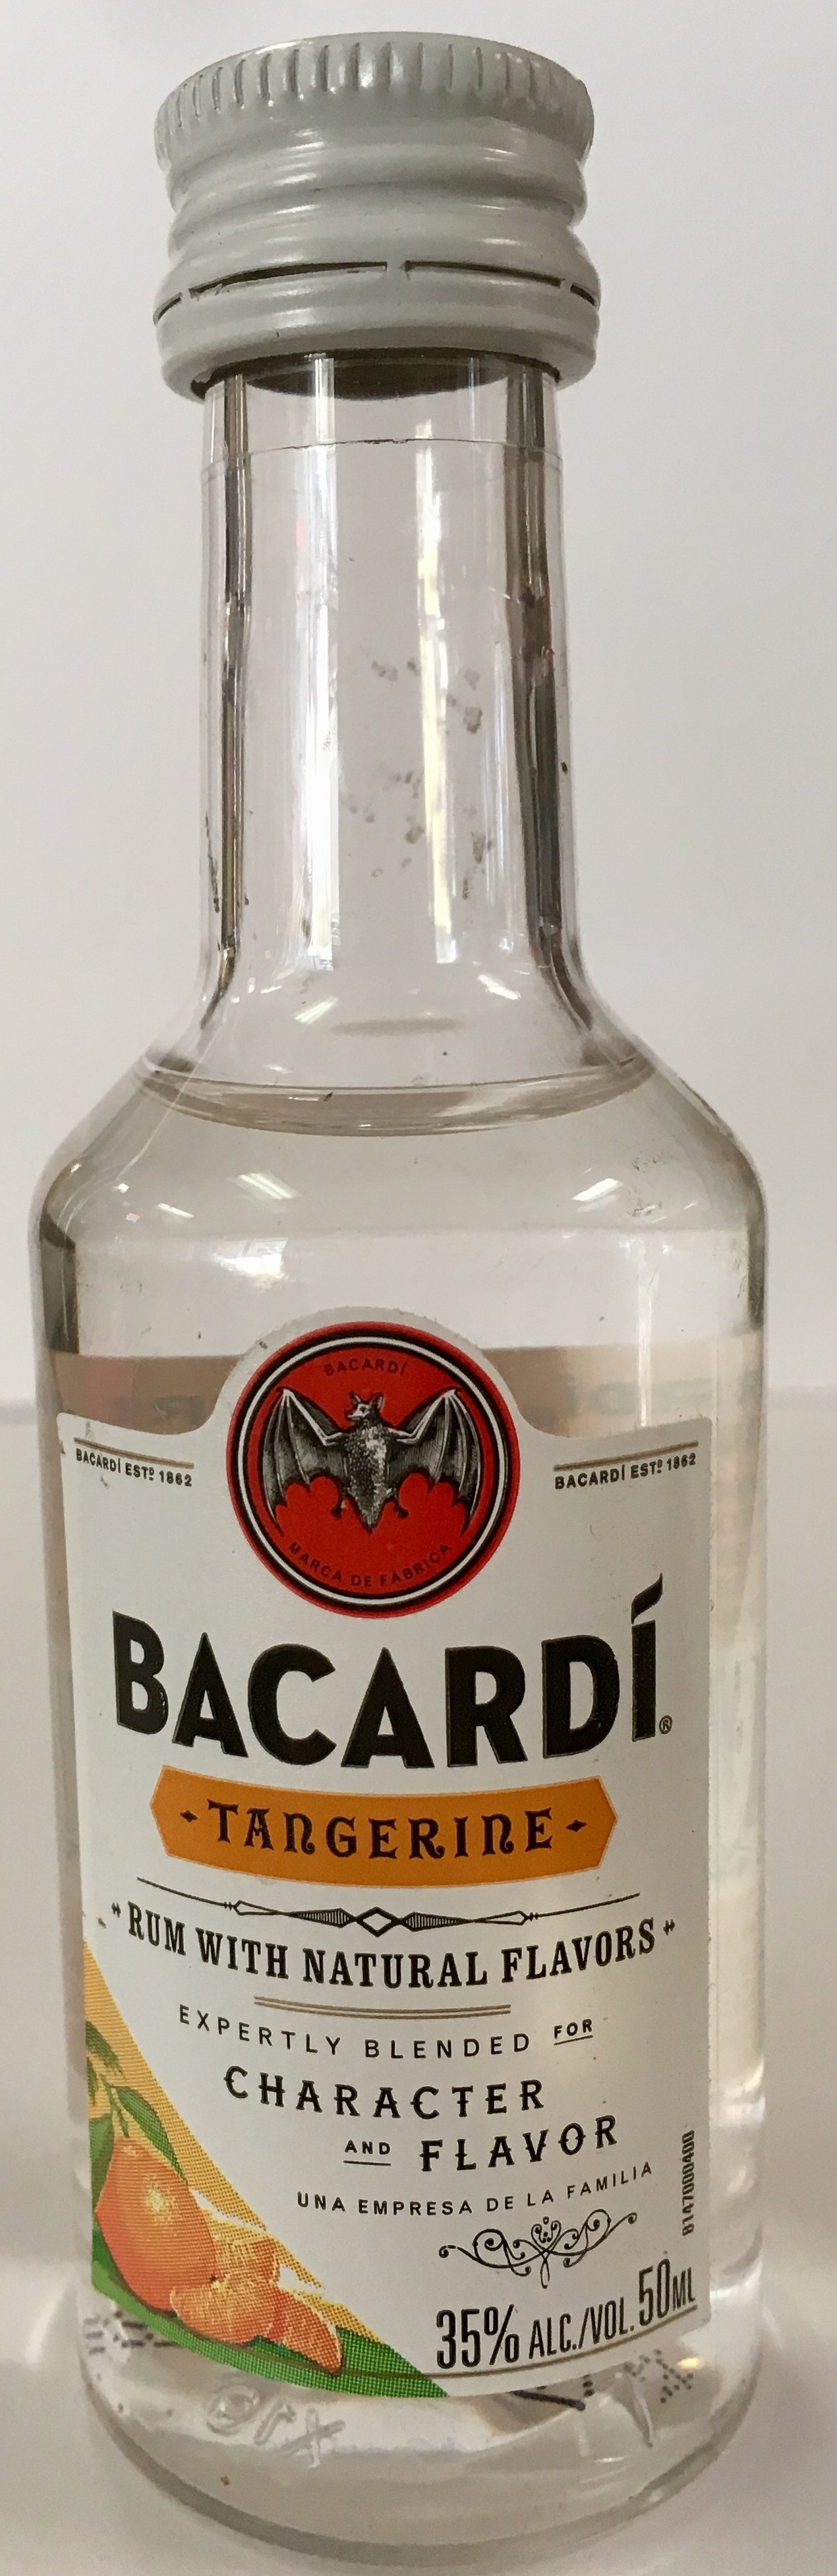 Mini bottle Bacardi Puerto Rican Rum